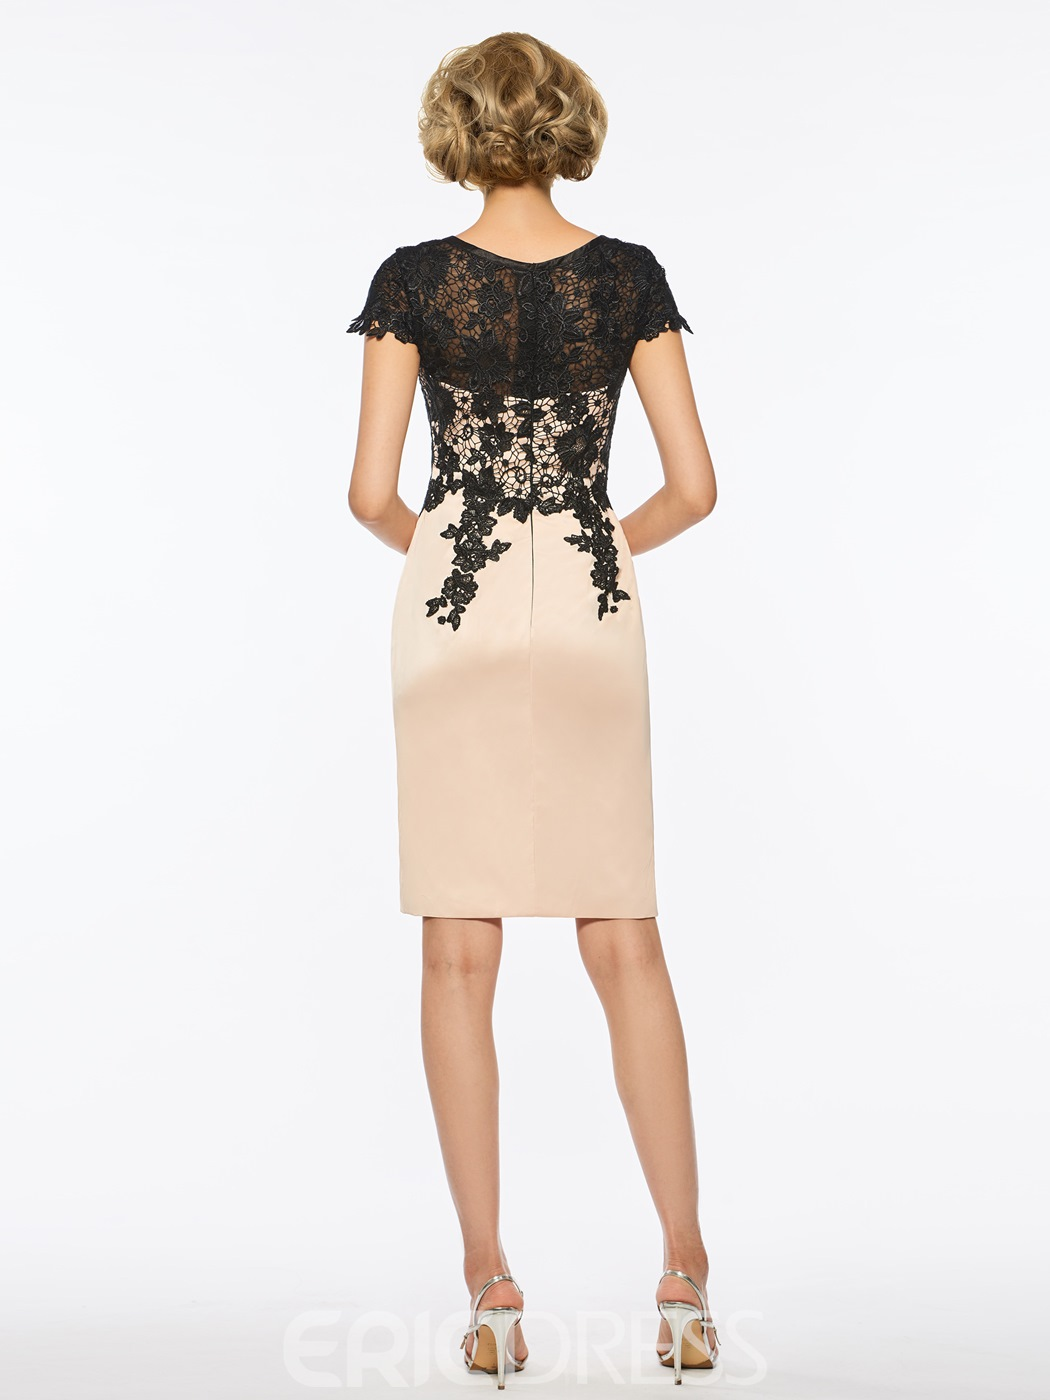 Ericdress Scoop Lace Sheath Knee Length Mother Dress with Half Sleeves Jacket